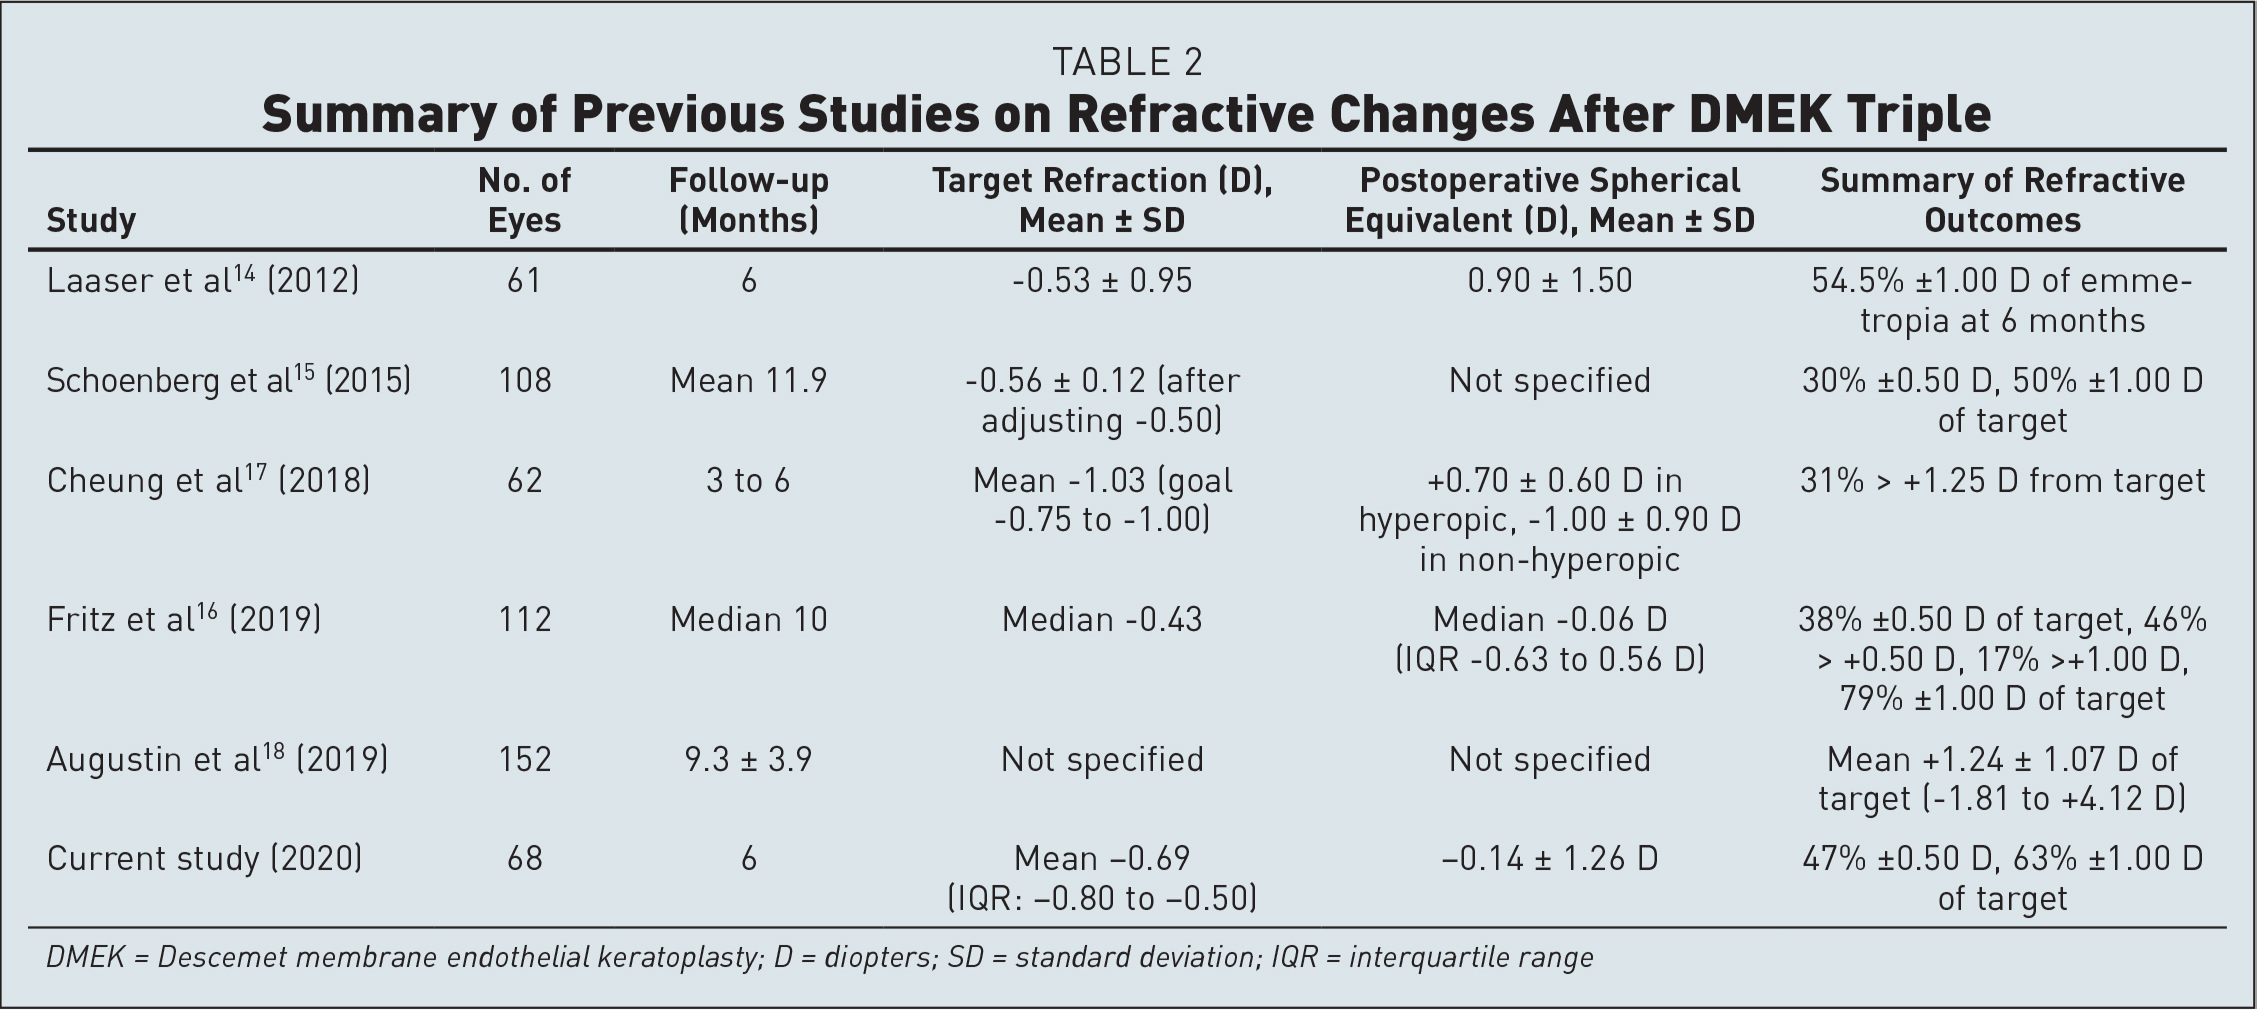 Summary of Previous Studies on Refractive Changes After DMEK Triple